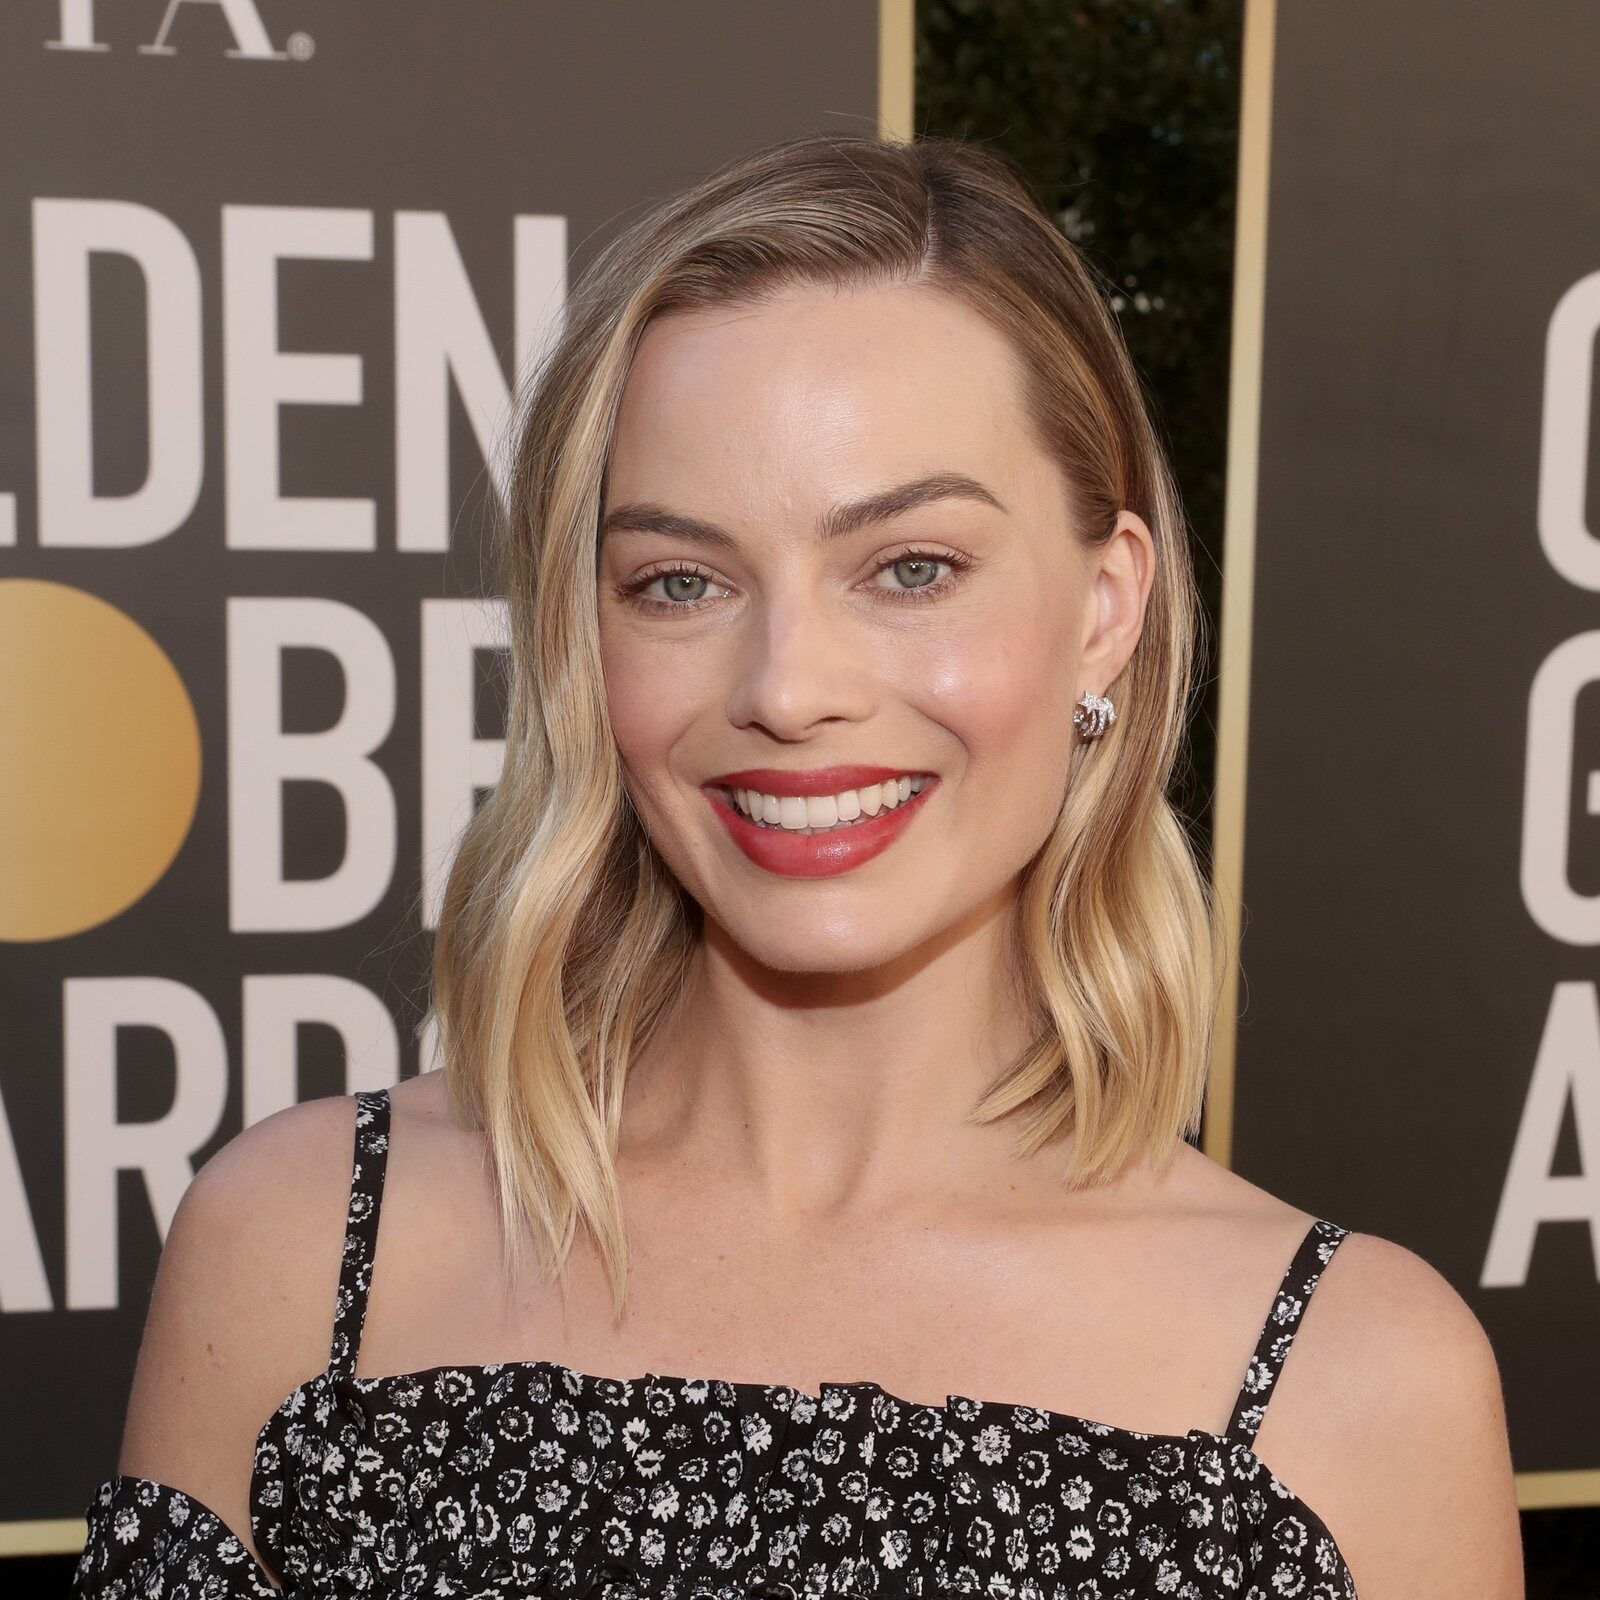 Margot Robbie joins Tom Hanks in the new Wes Anderson